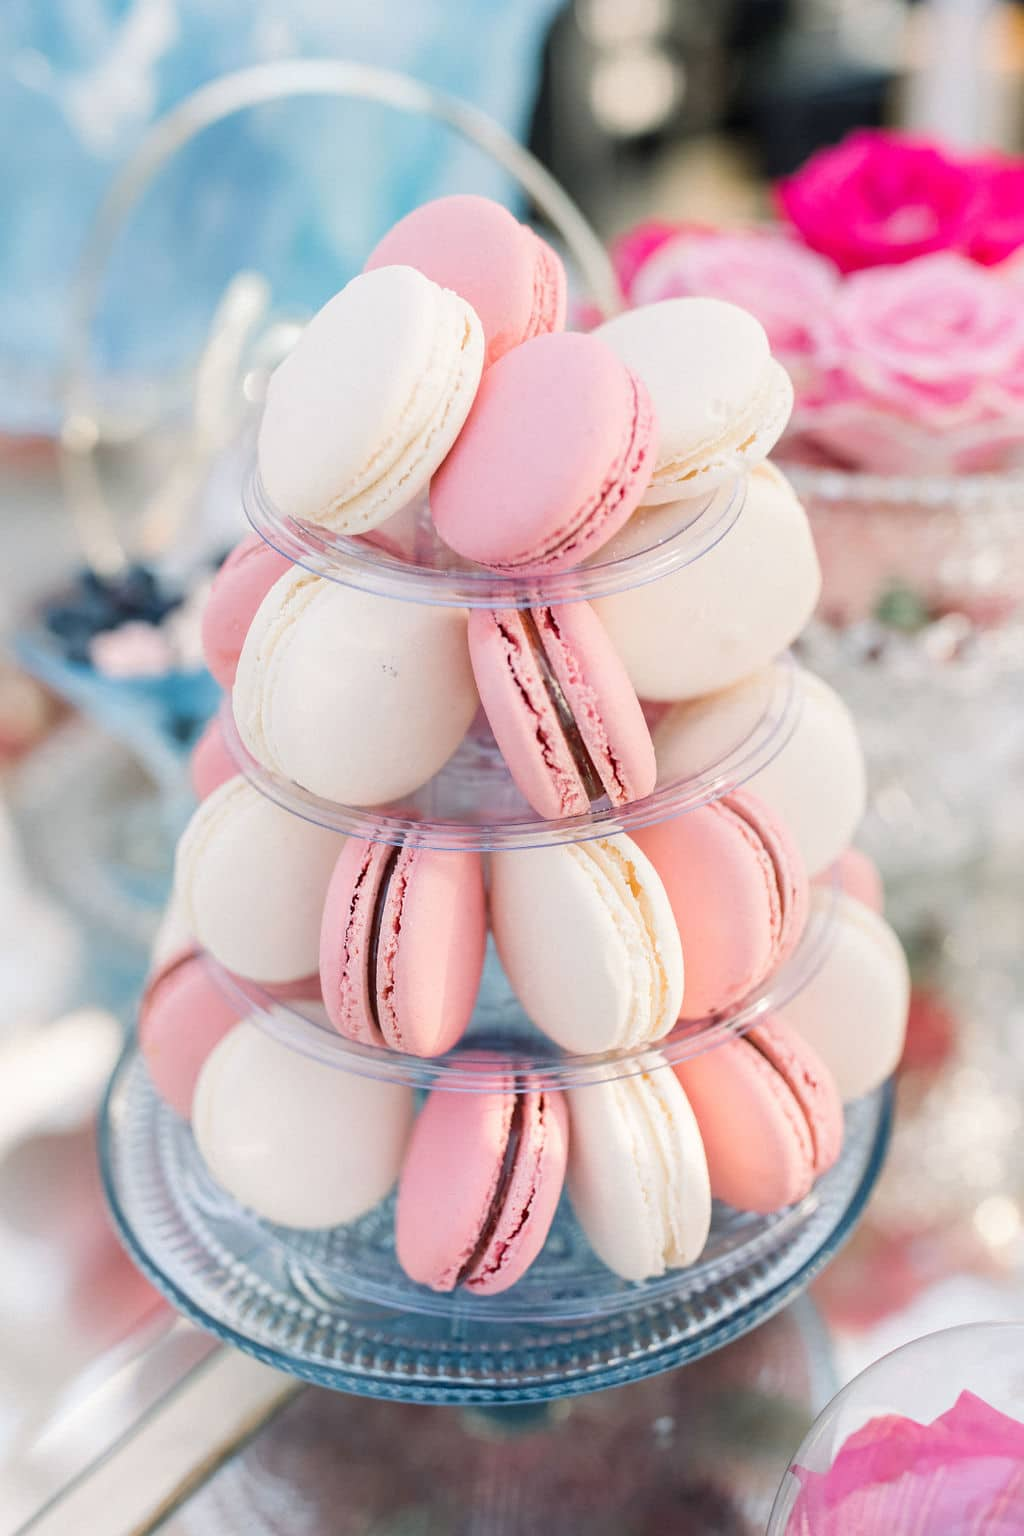 pink and whit macaroons on a beautiful four tiered tray for wedding guests